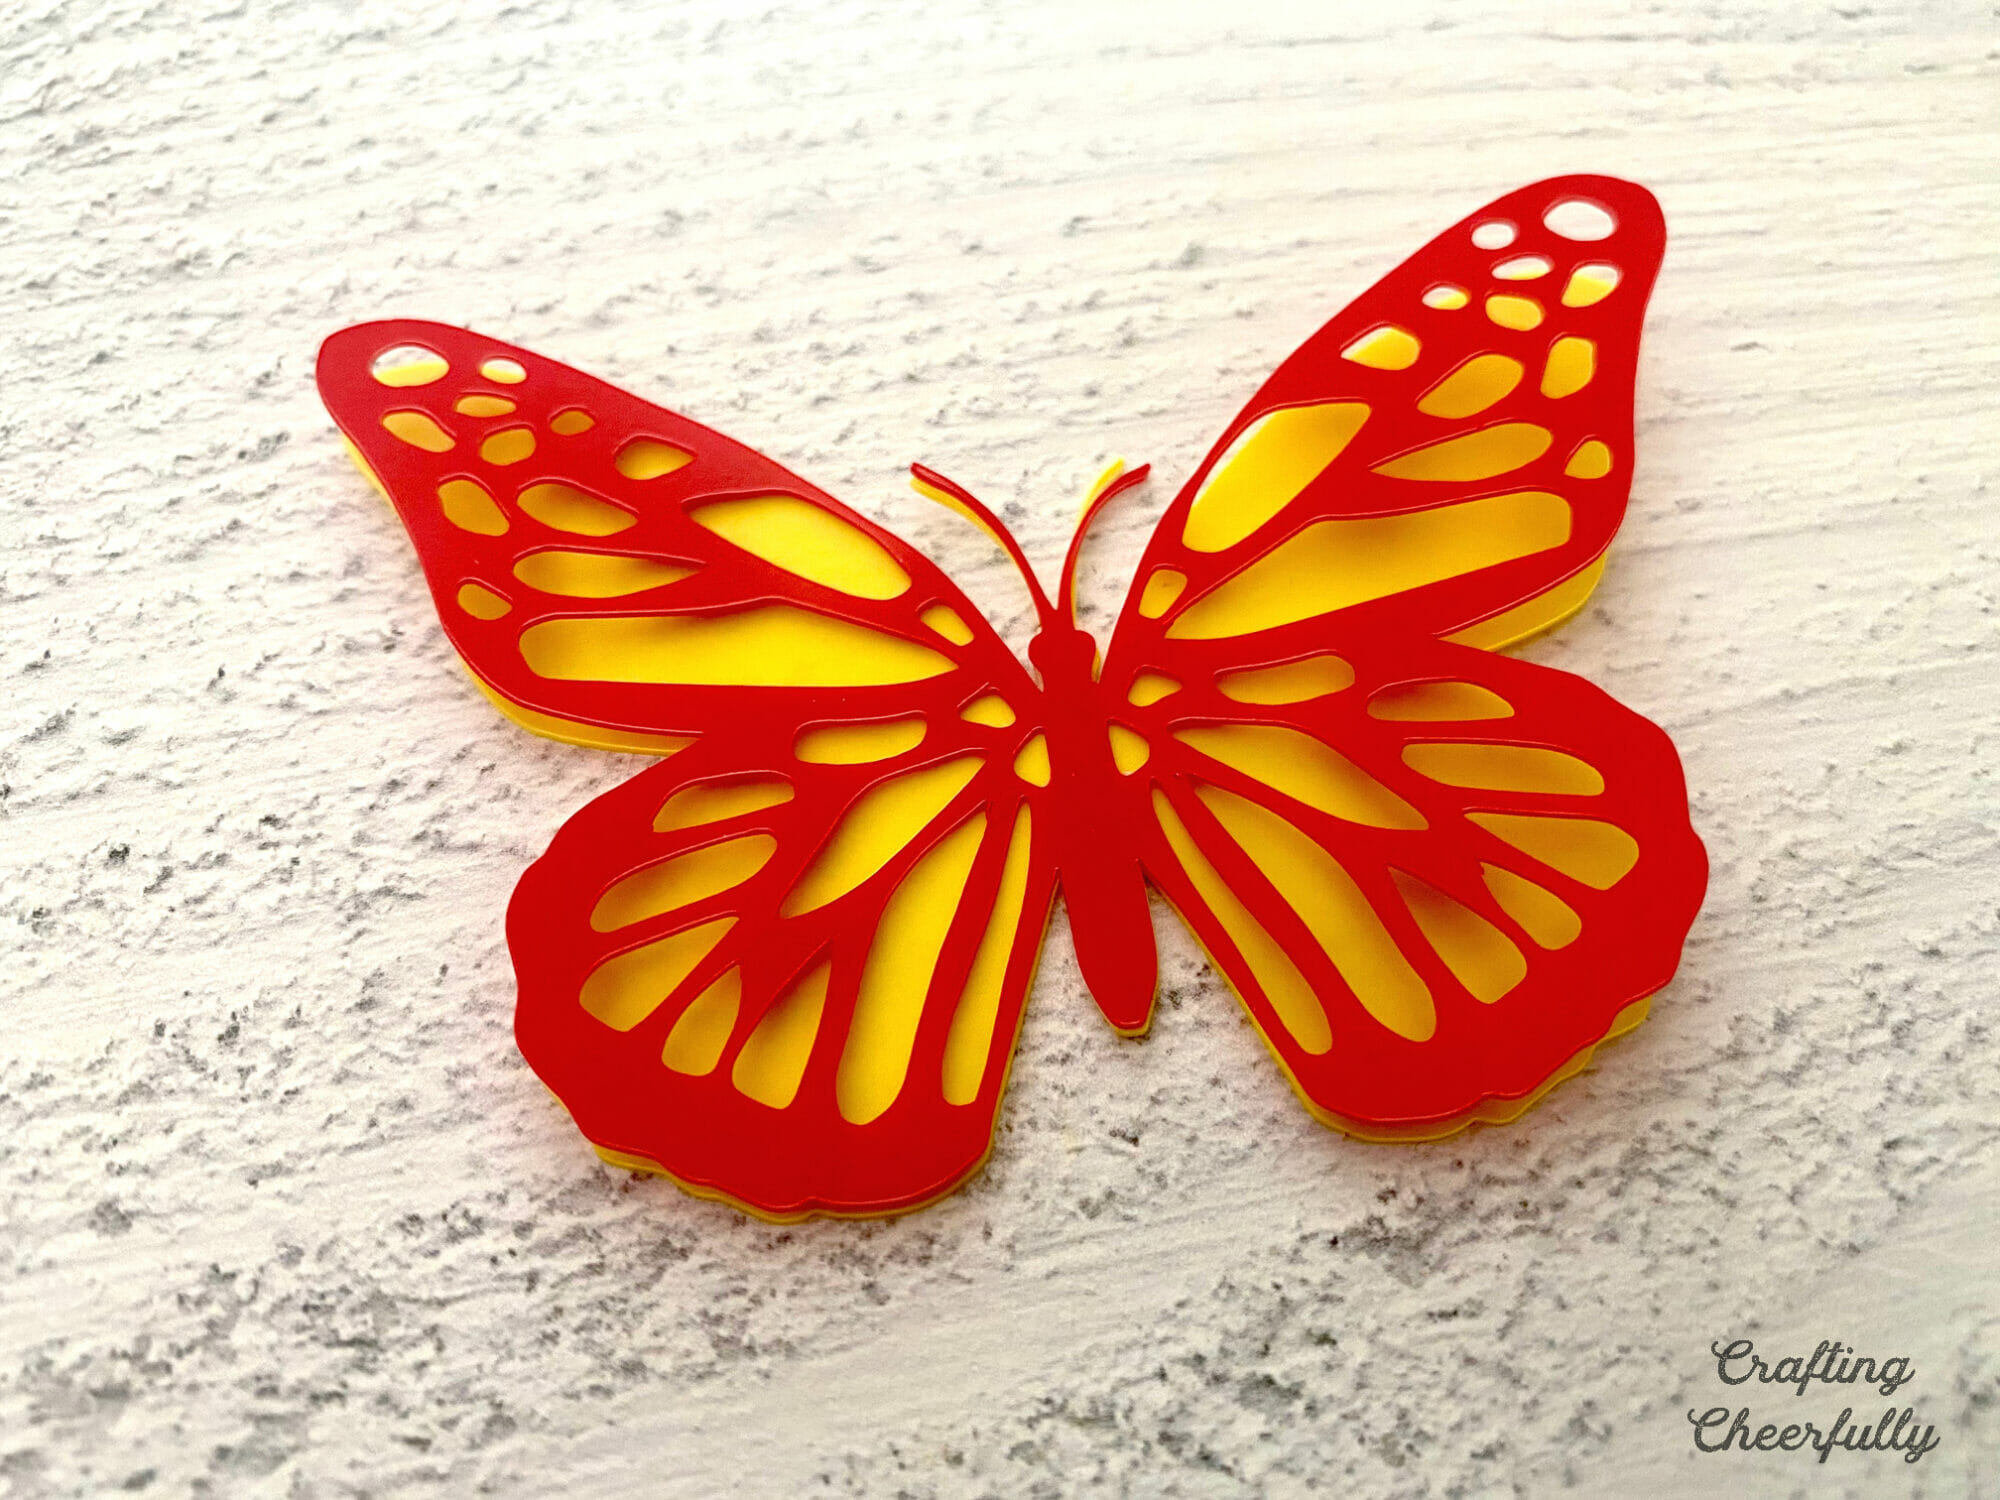 A red and yellow butterfly made from craft plastic.